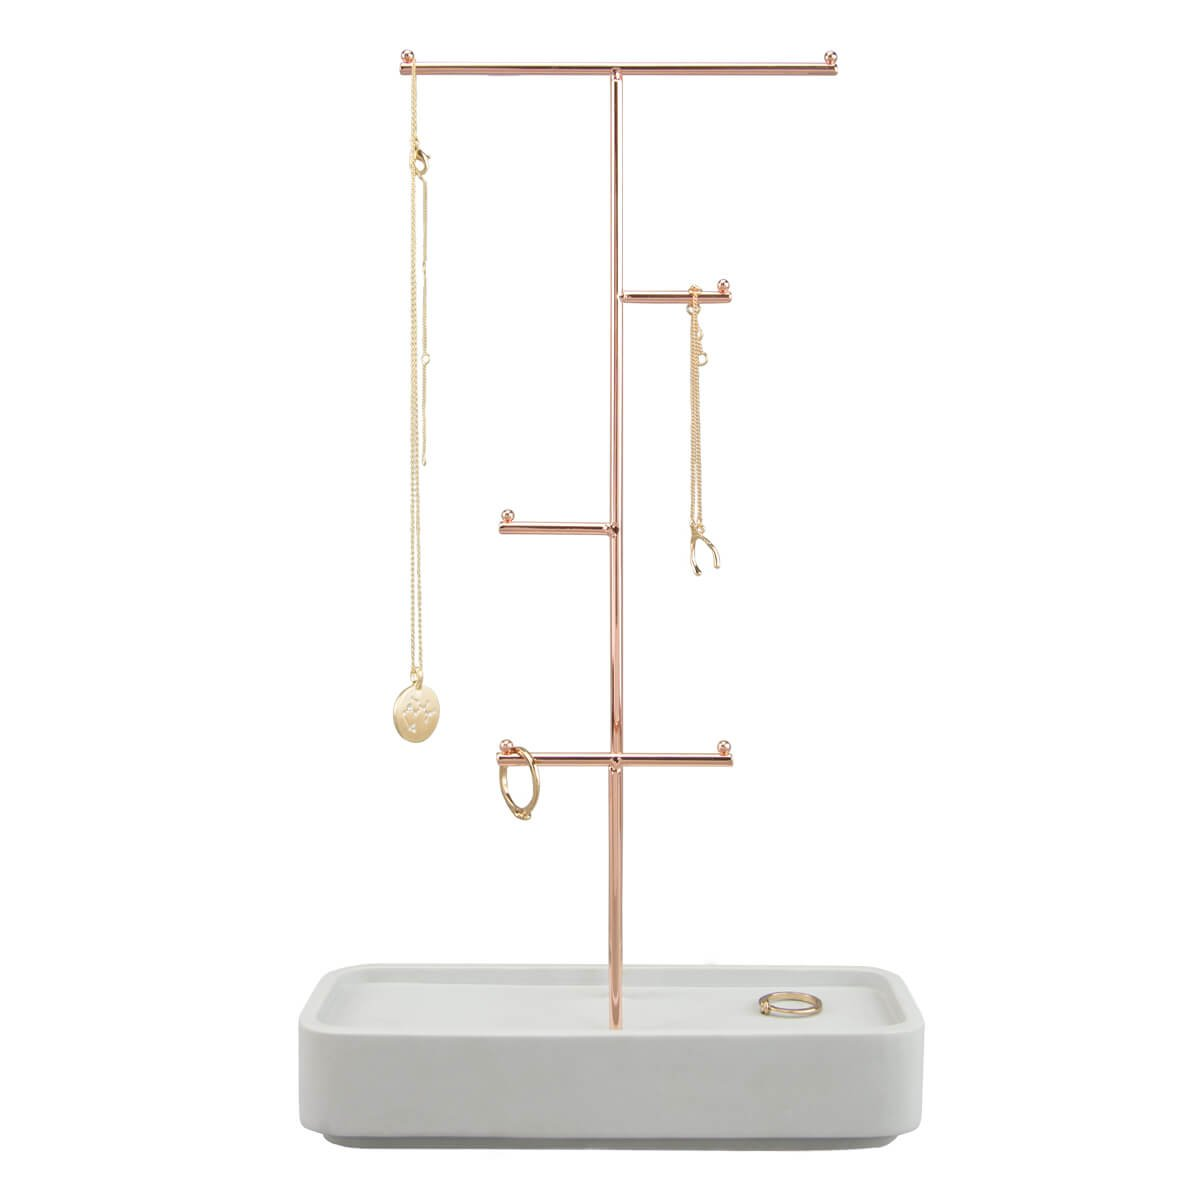 STACKERS Jewellery Storage - Concrete Resin Stacking Jewellery Hanger Carters of London 73862